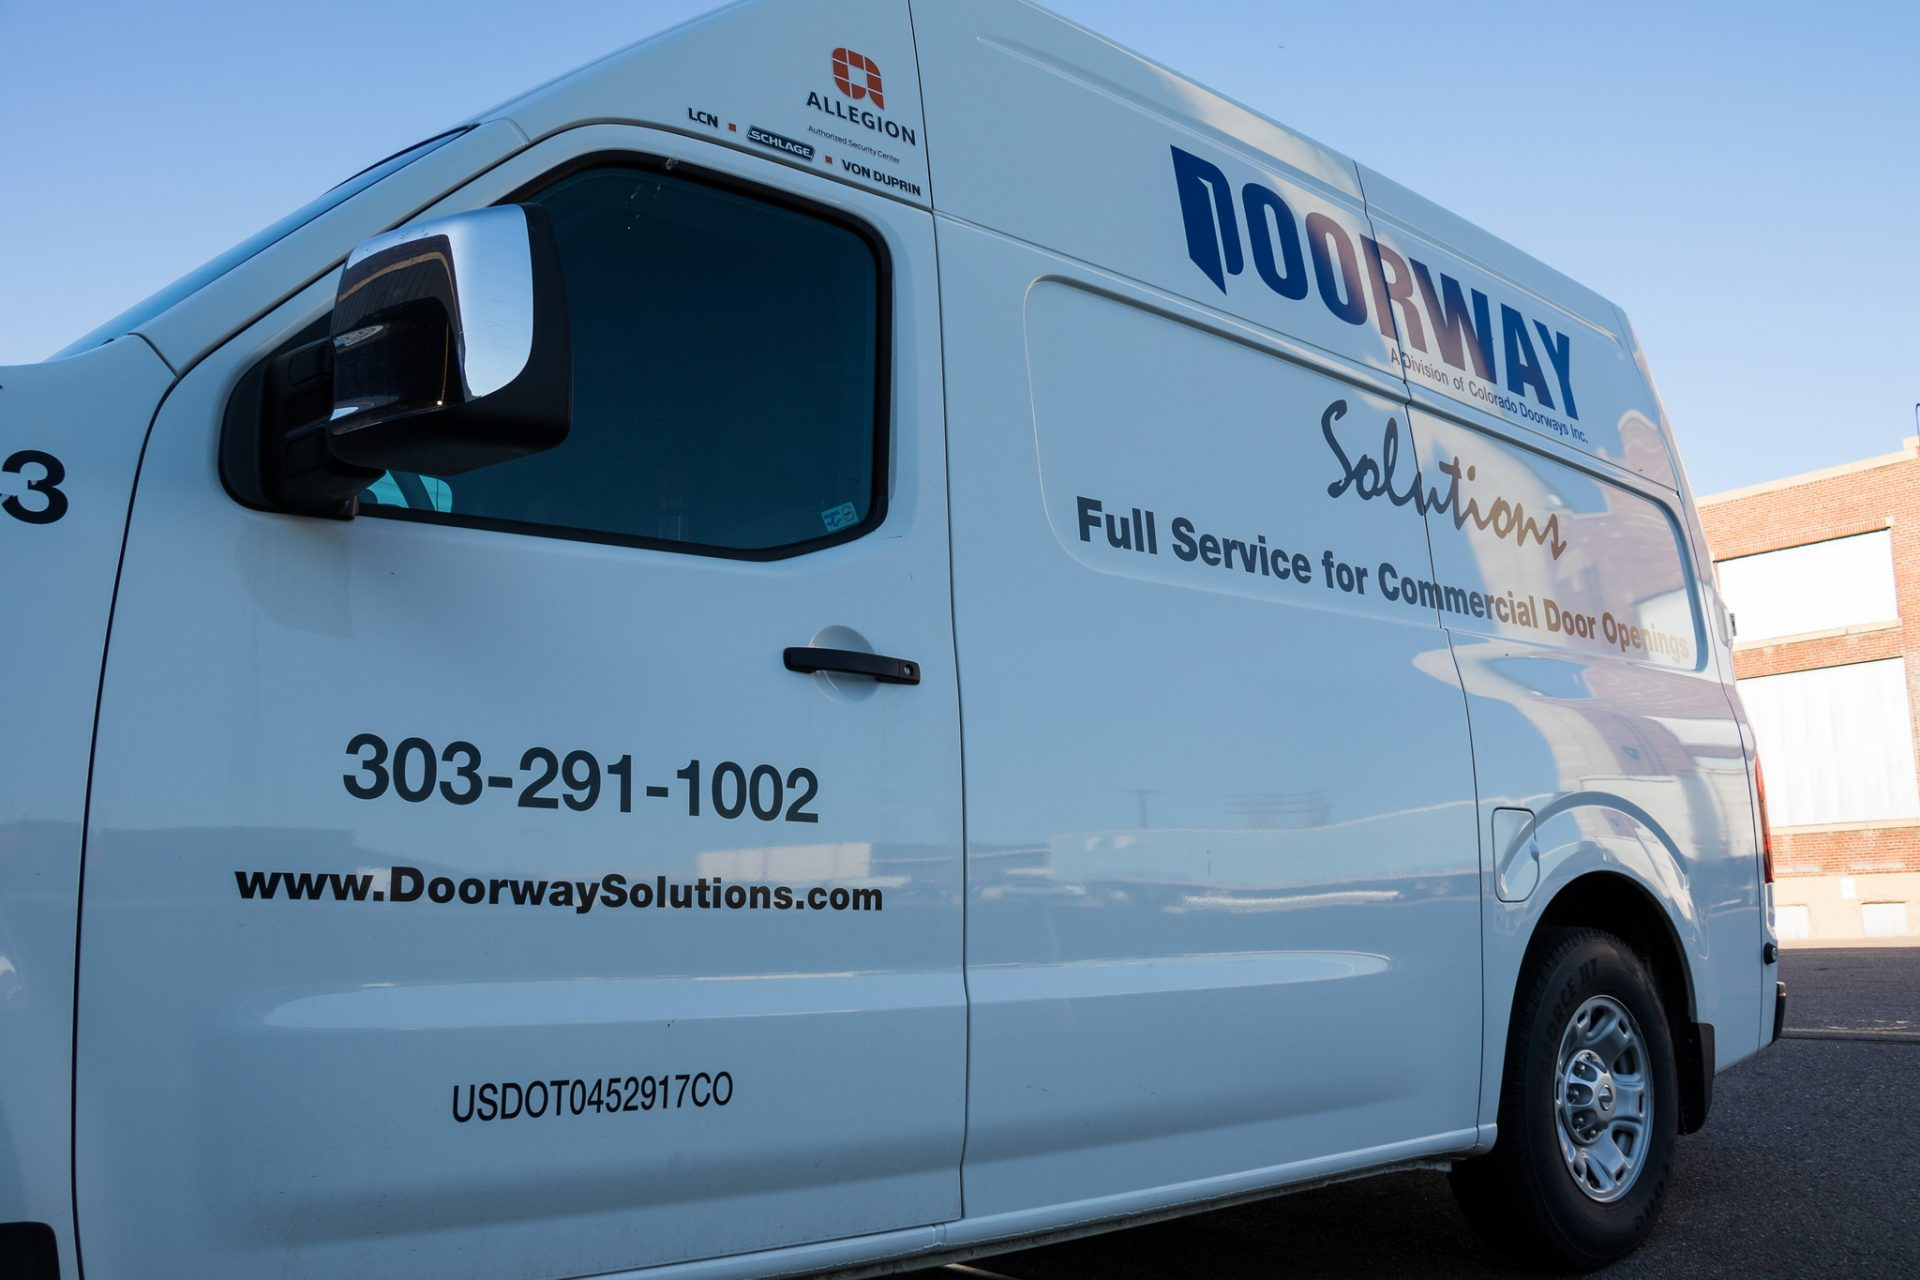 Doorway Solutions Field Service and Installation